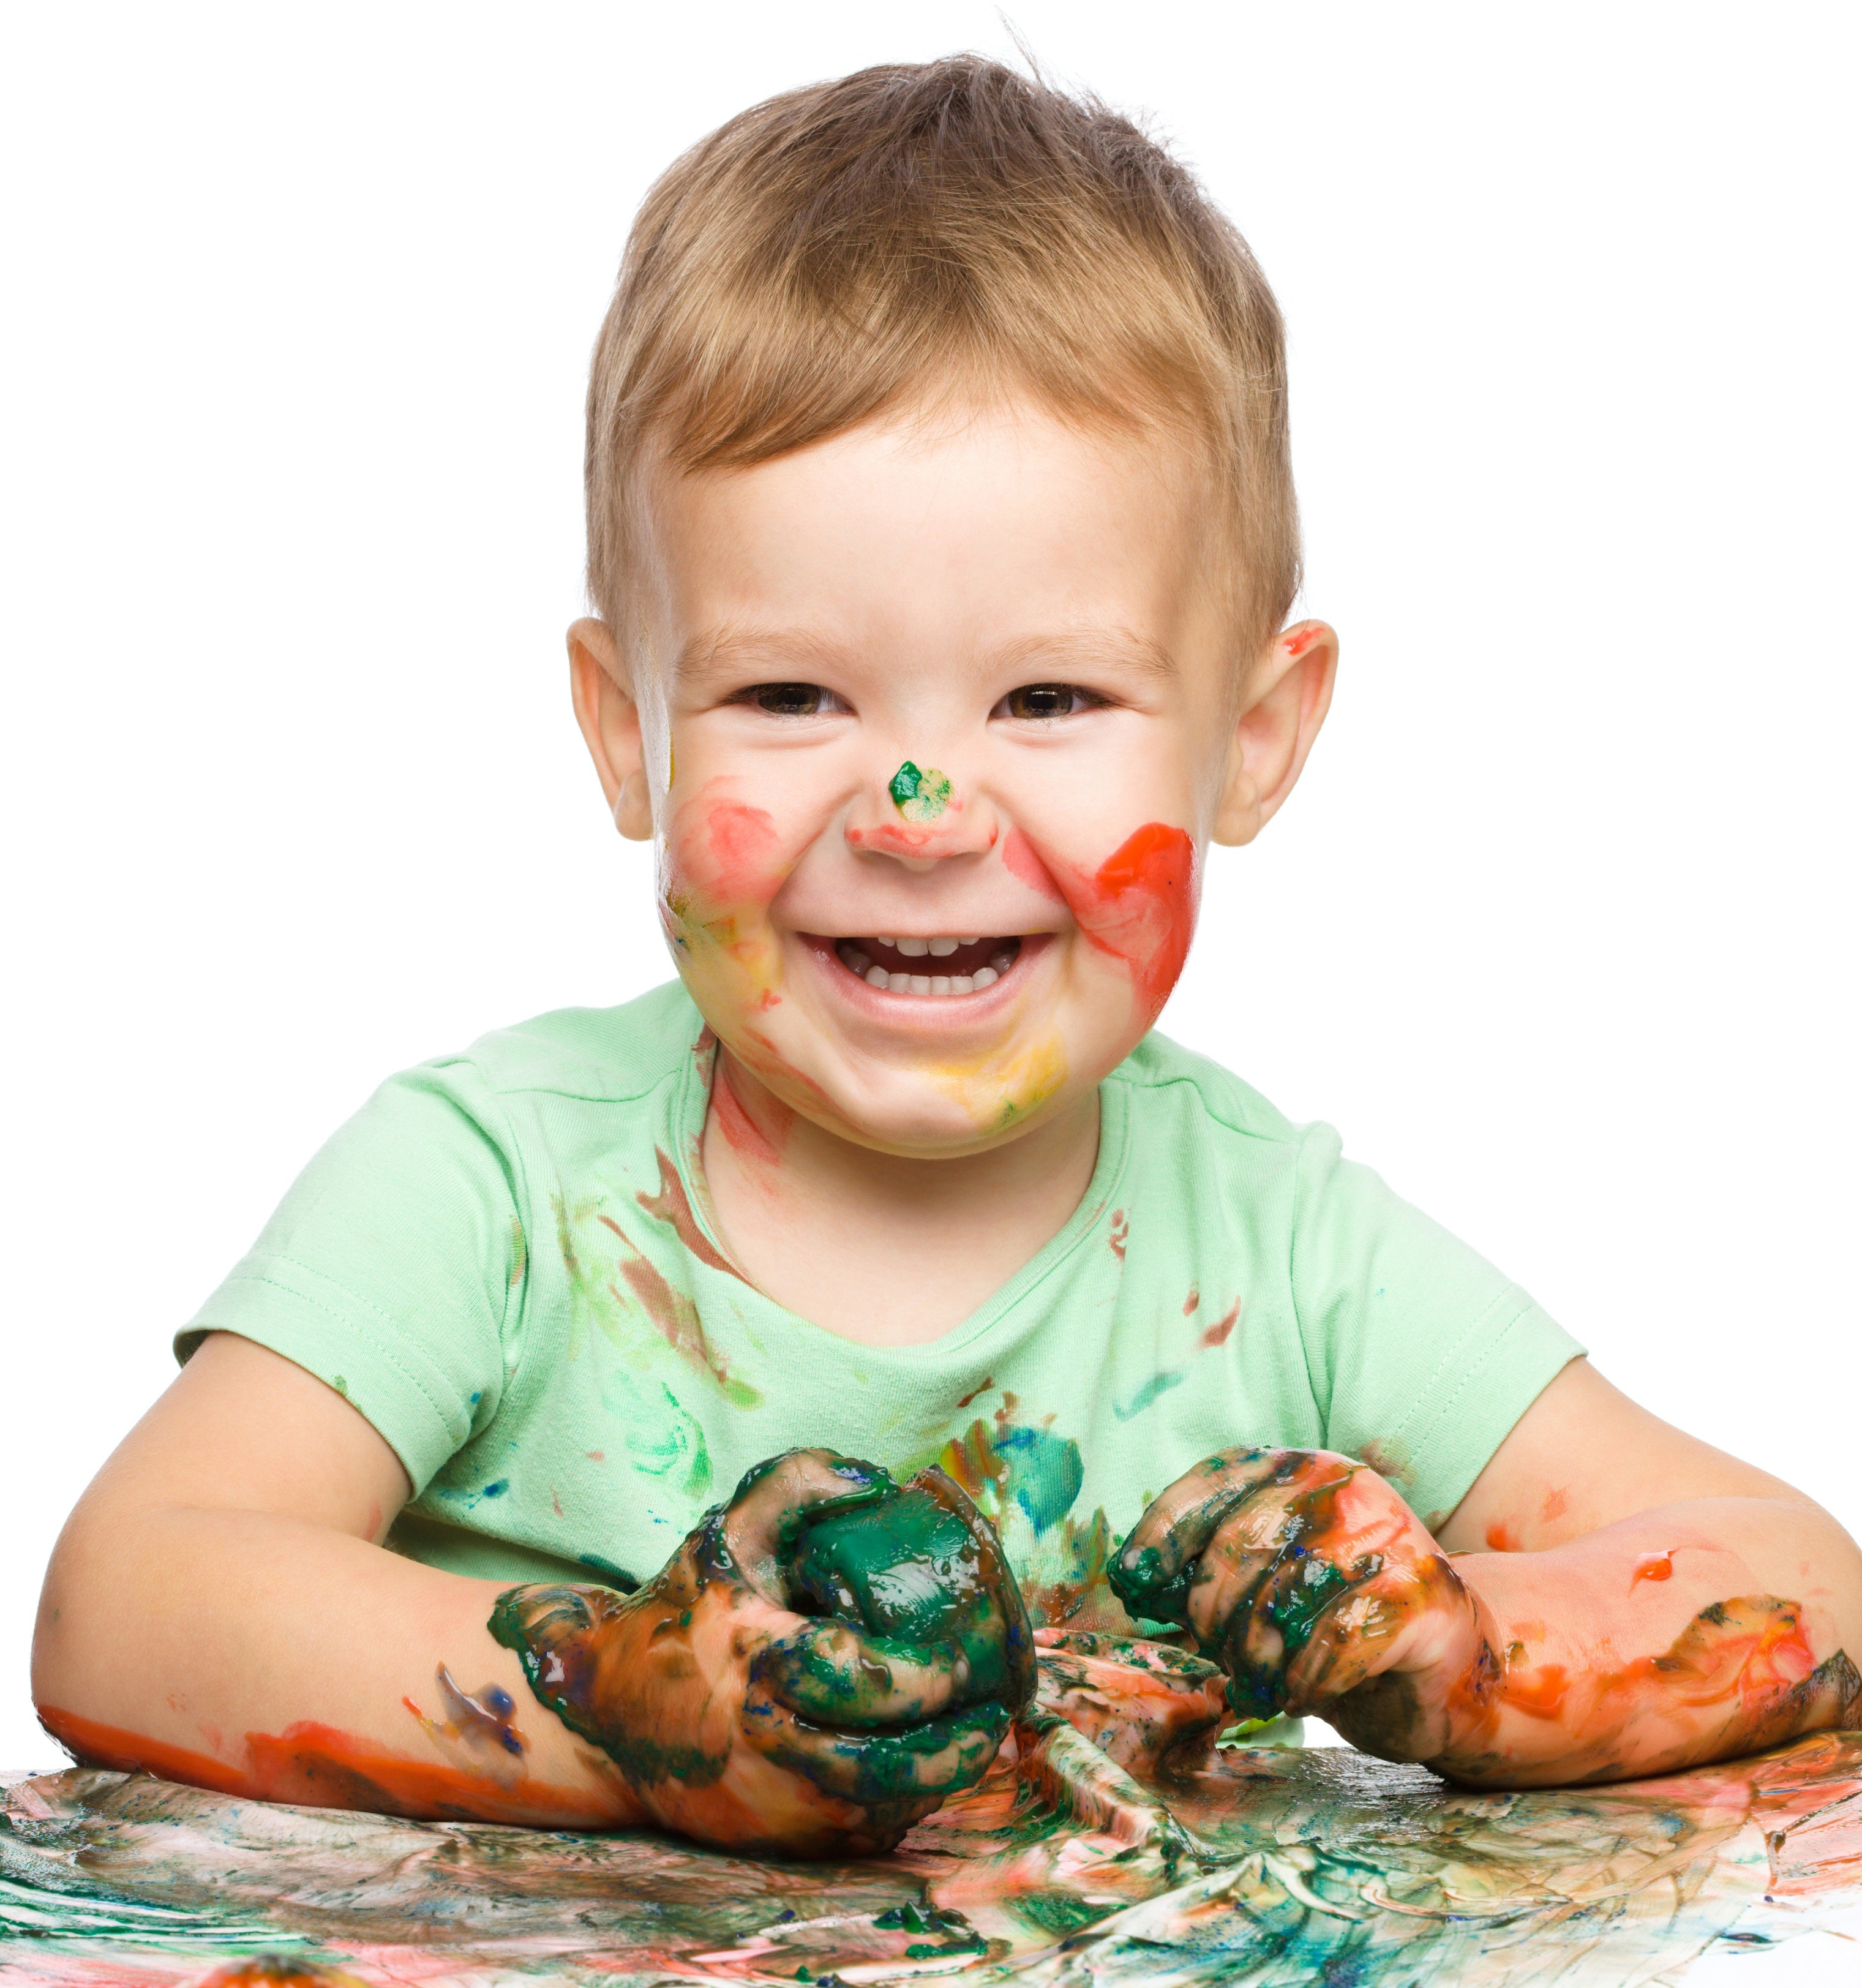 kid covered in paint - small